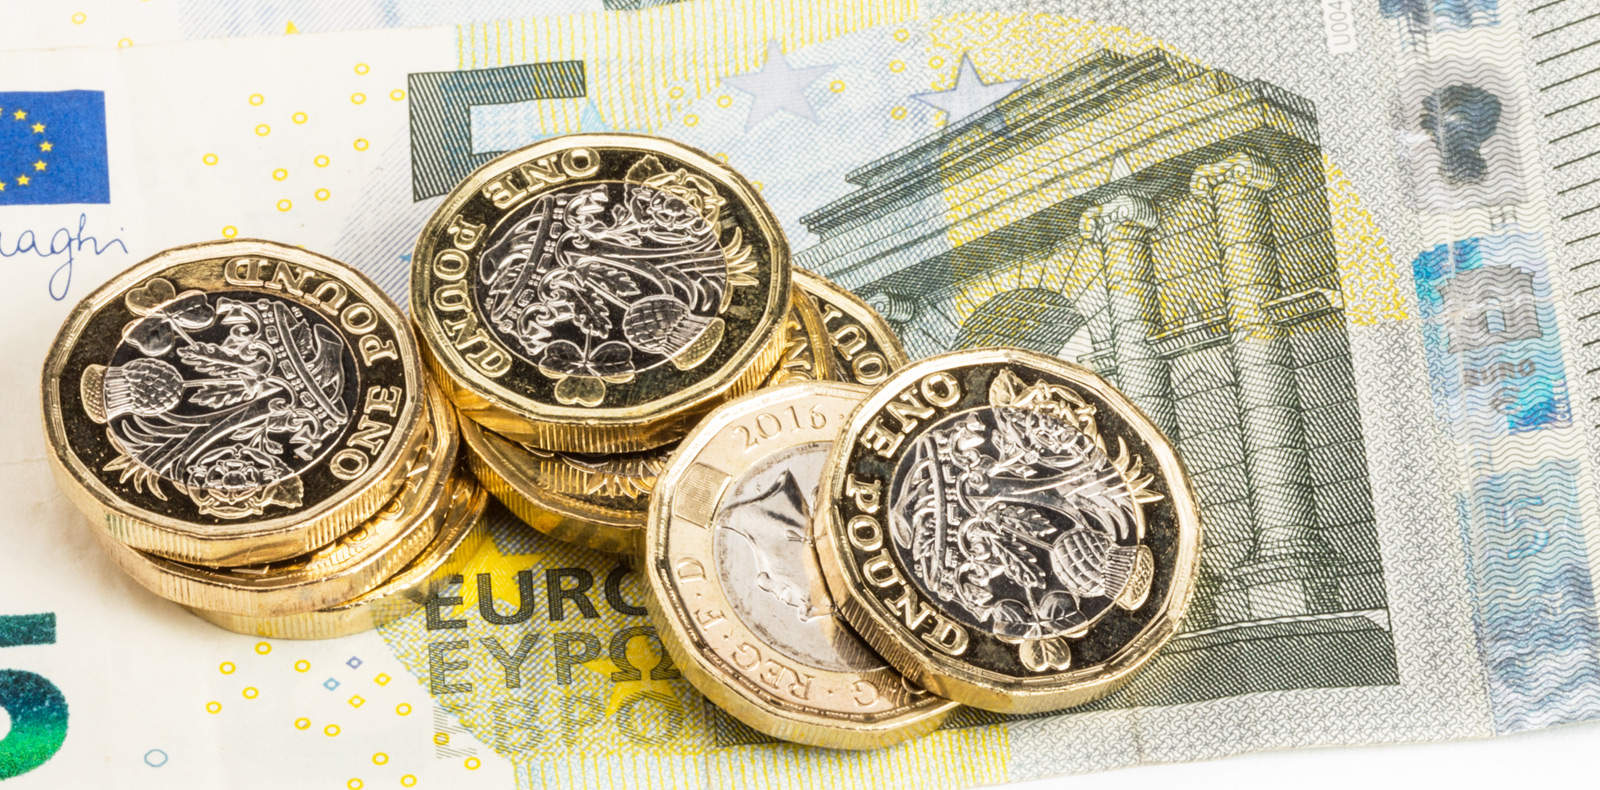 GBP/EUR exchange rate hits 5 month high